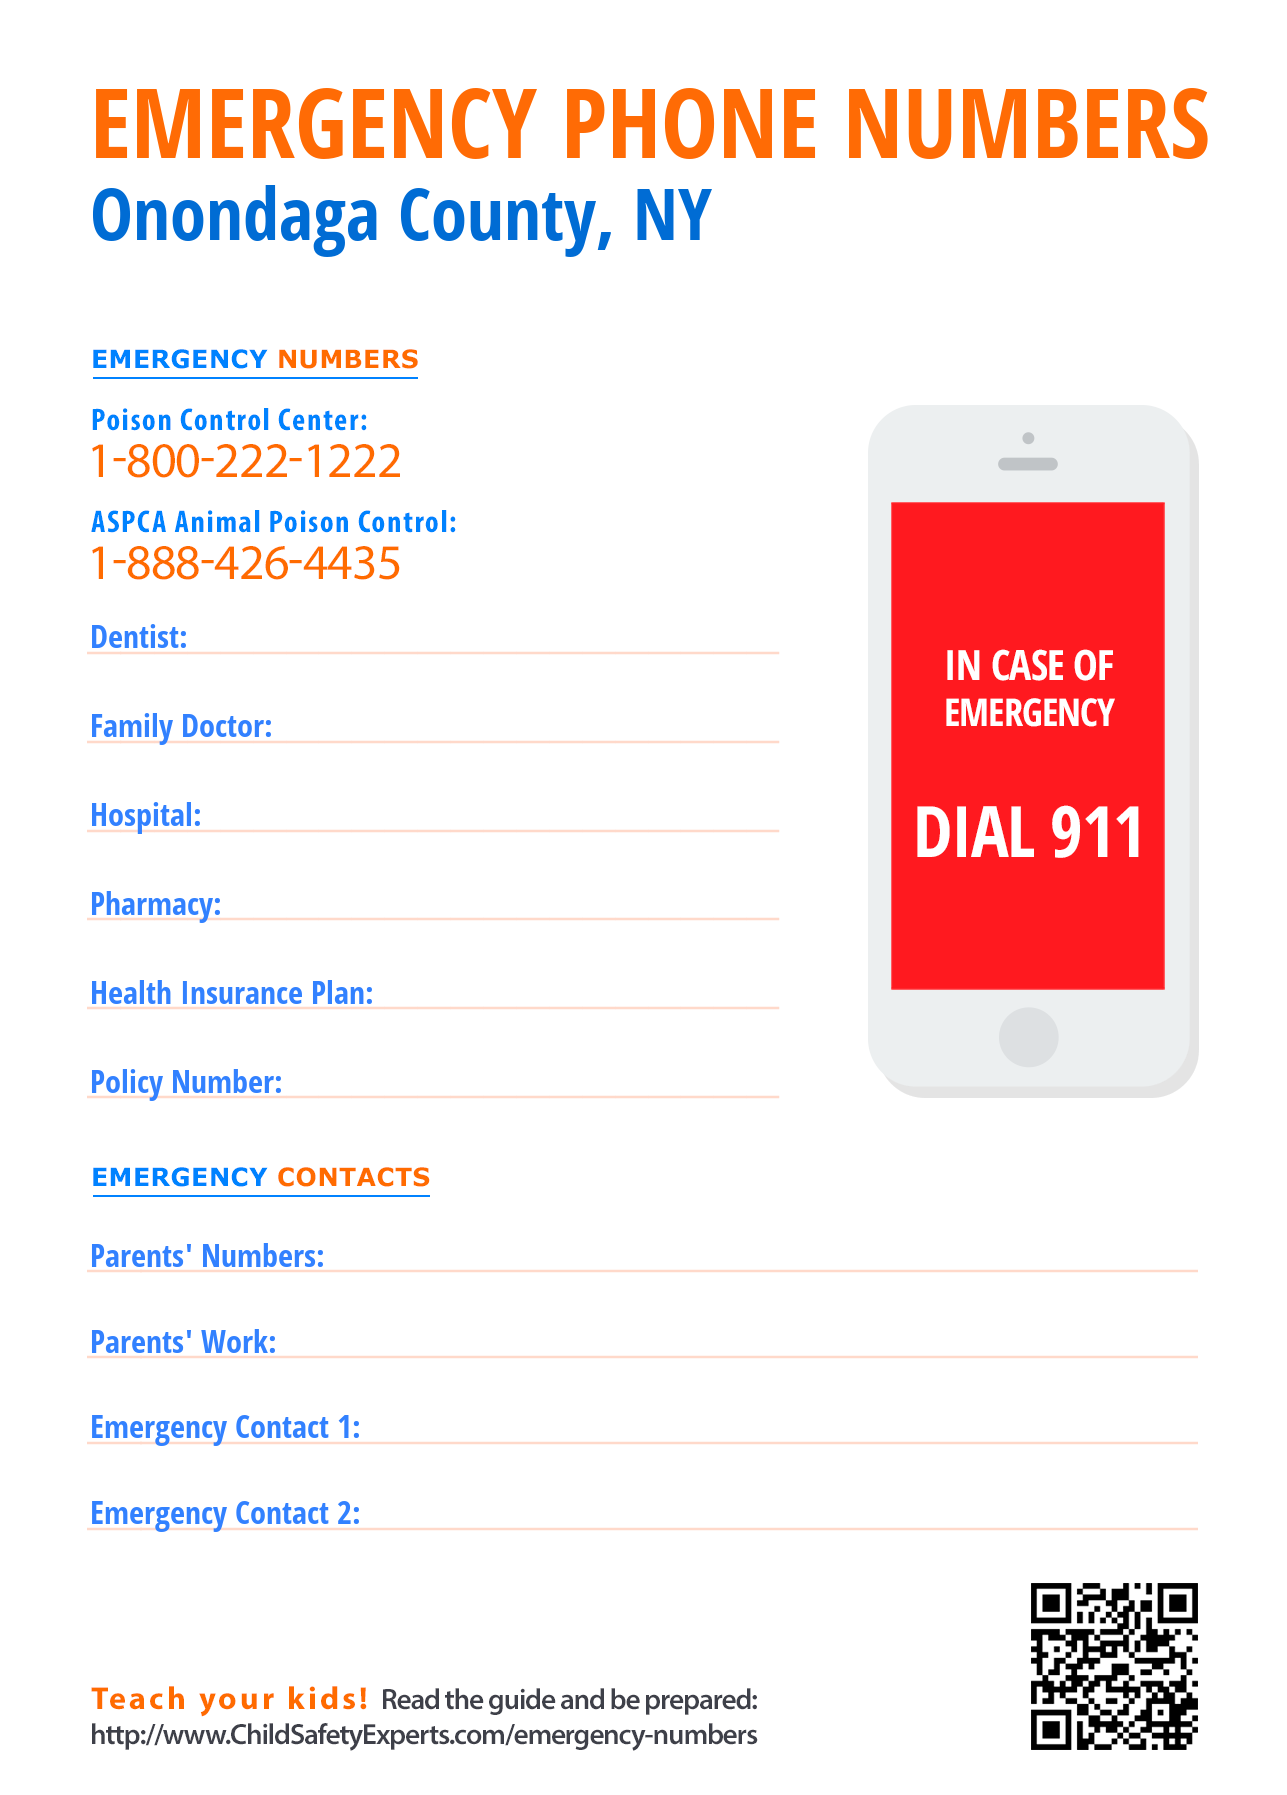 Important emergency phone numbers in Onondaga County, New York